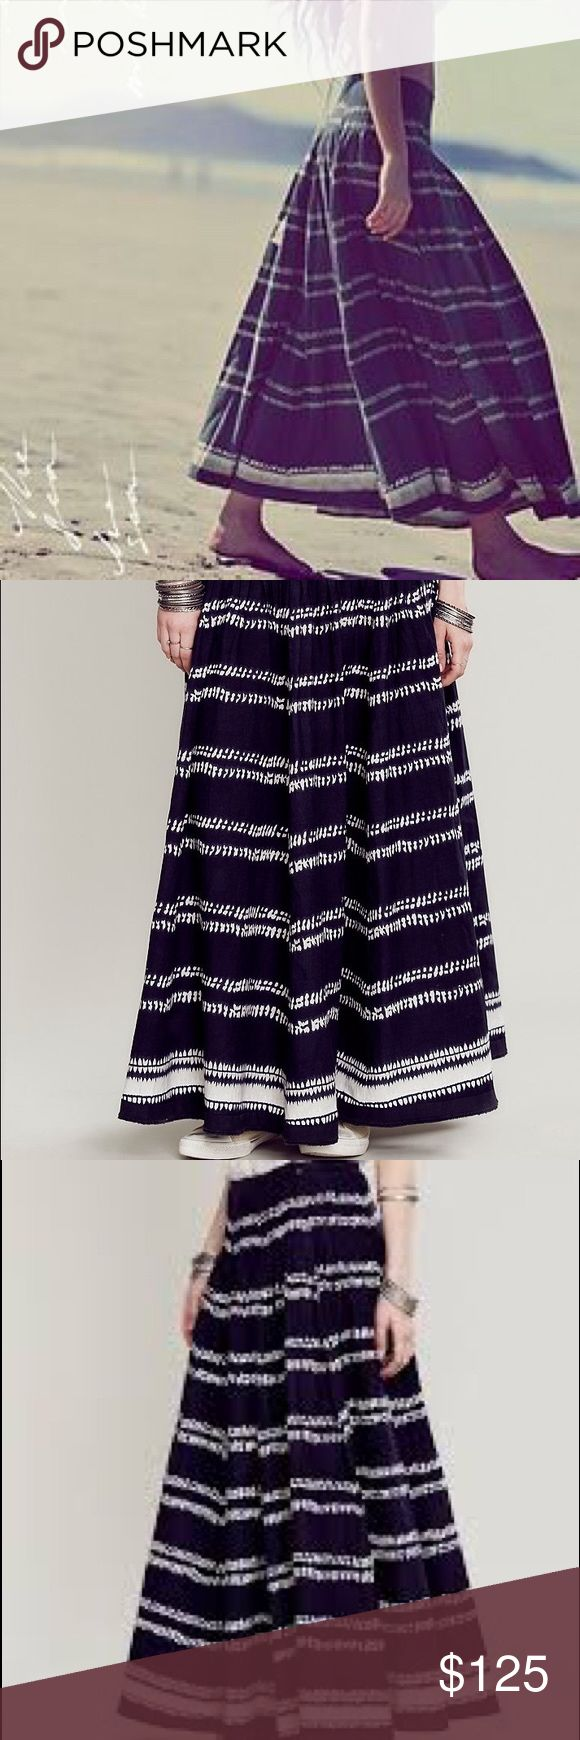 Free People One Bali Striped Maxi Skirt NWOT XS Brand new without tag.  Size 2 fits XS-S.  Sold out everywhere.    Style: 31783103 Color Code:  Pleated, striped cotton maxi skirt. Semi-sheer, with a voluminous silhouette. Zip closure.  *FP One is an exclusive collection made with love from India. Defined by bold embellishments and natural-feeling fabrics, the collection brings a modern twist to old world techniques.  *100% Cotton *Hand Wash Cold *Import Free People Skirts Maxi